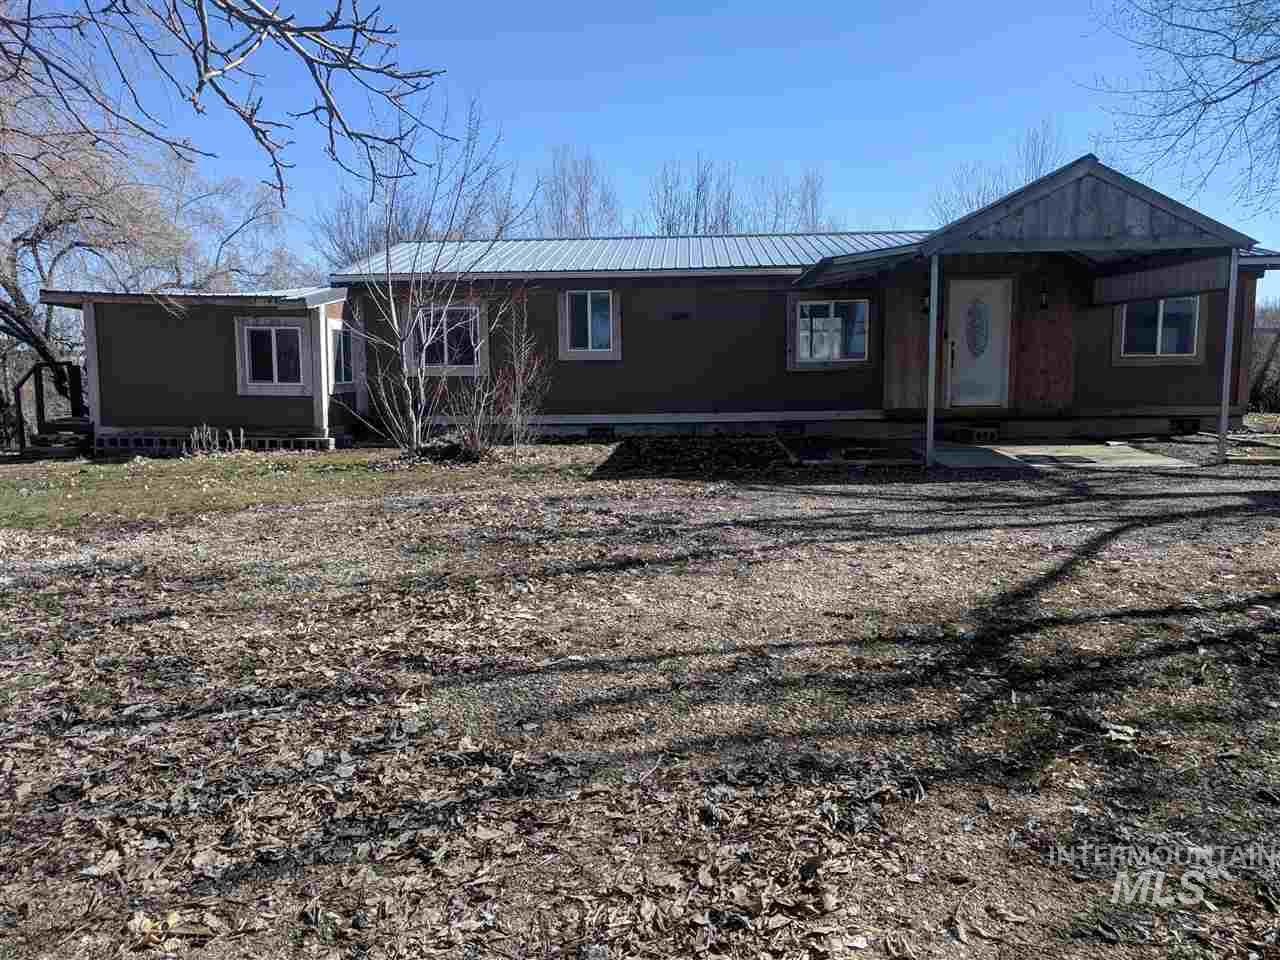 Great property with easy access to the freeway. This is a fully fenced property with two electric meters. One meter on each parcel. Property has been split, but second split was never used. Second address is 17460 (shown on plat map).